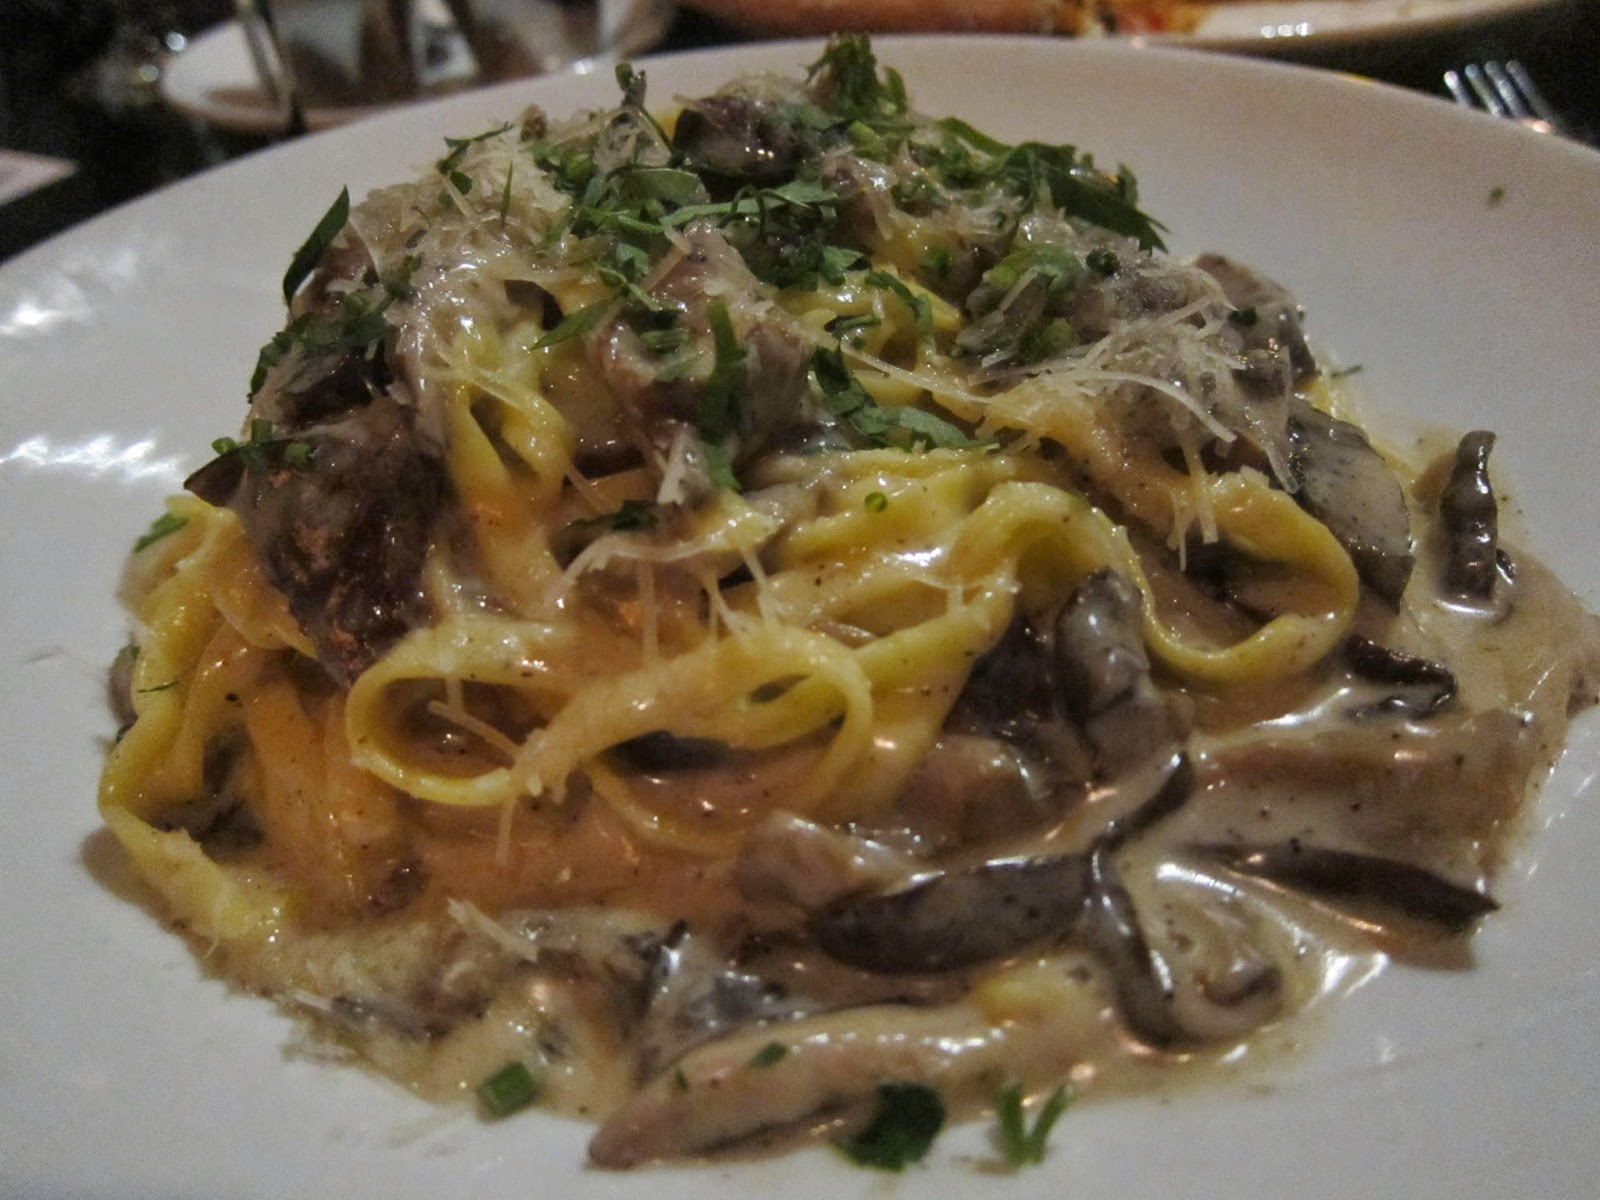 Linguine with black truffle cream and mushrooms at Orta | The Economical Eater